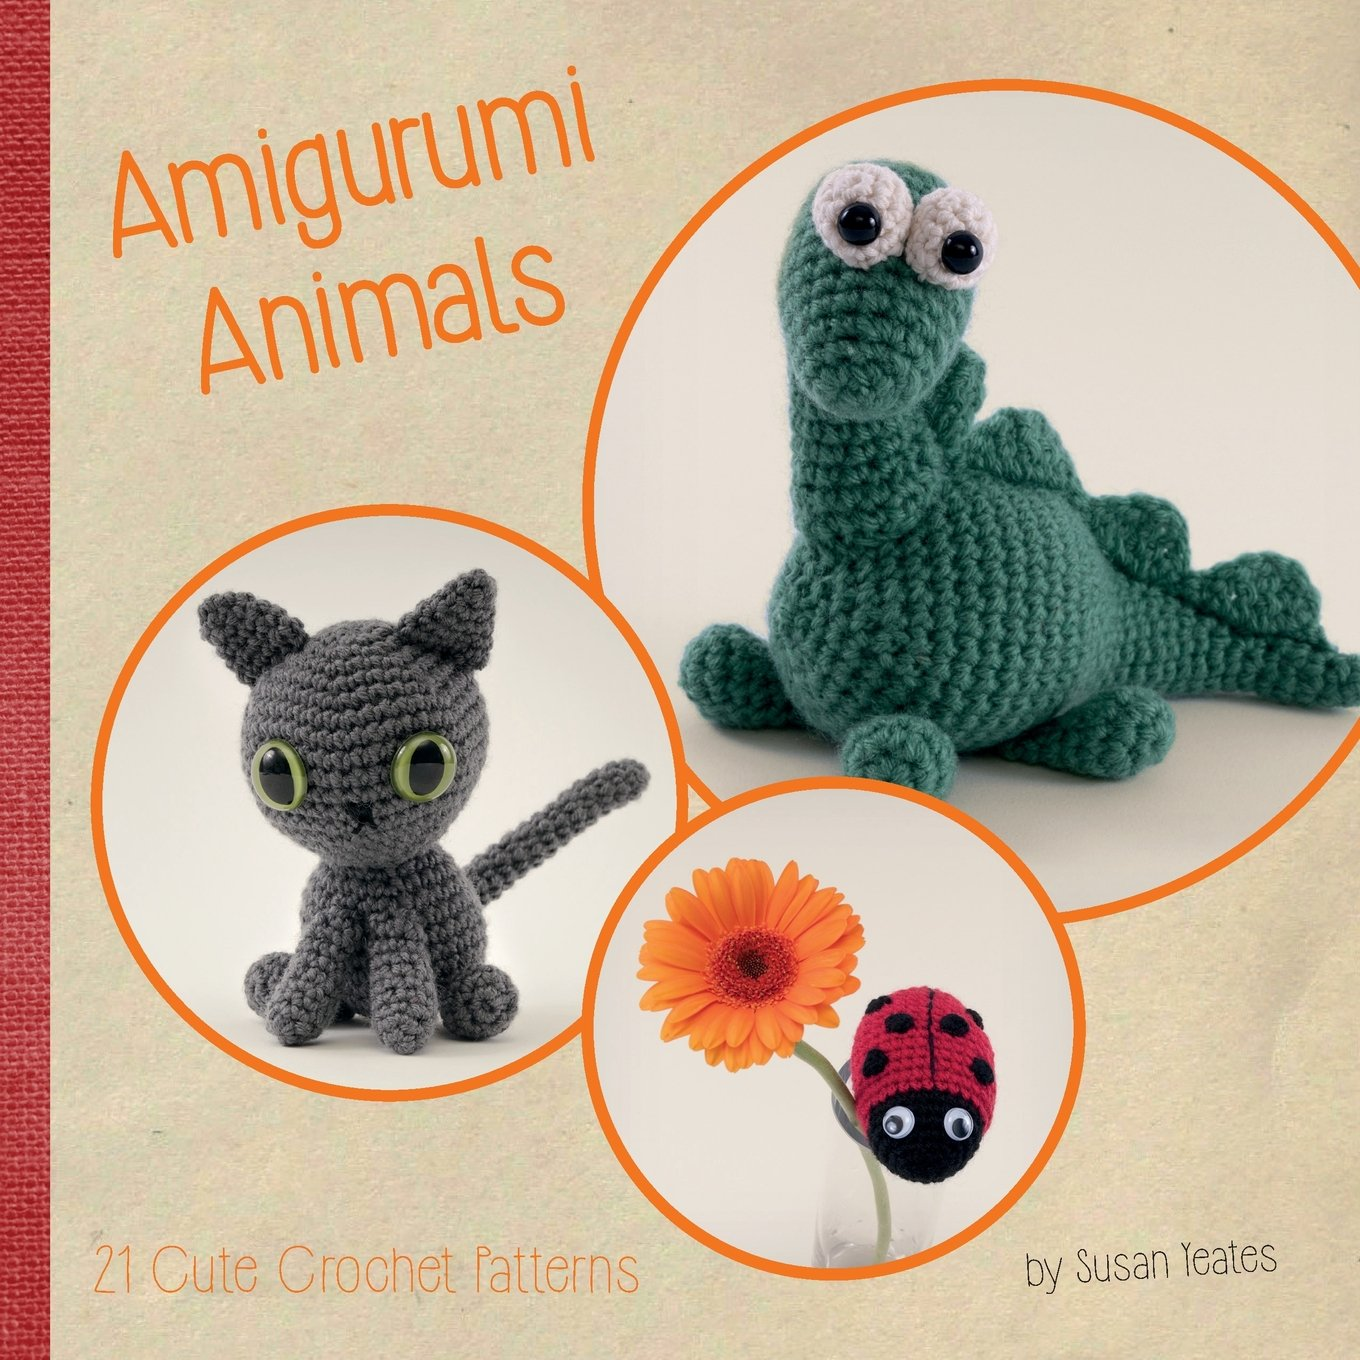 Amigurumi Animals 21 Cute Crochet Patterns Susan Yeates